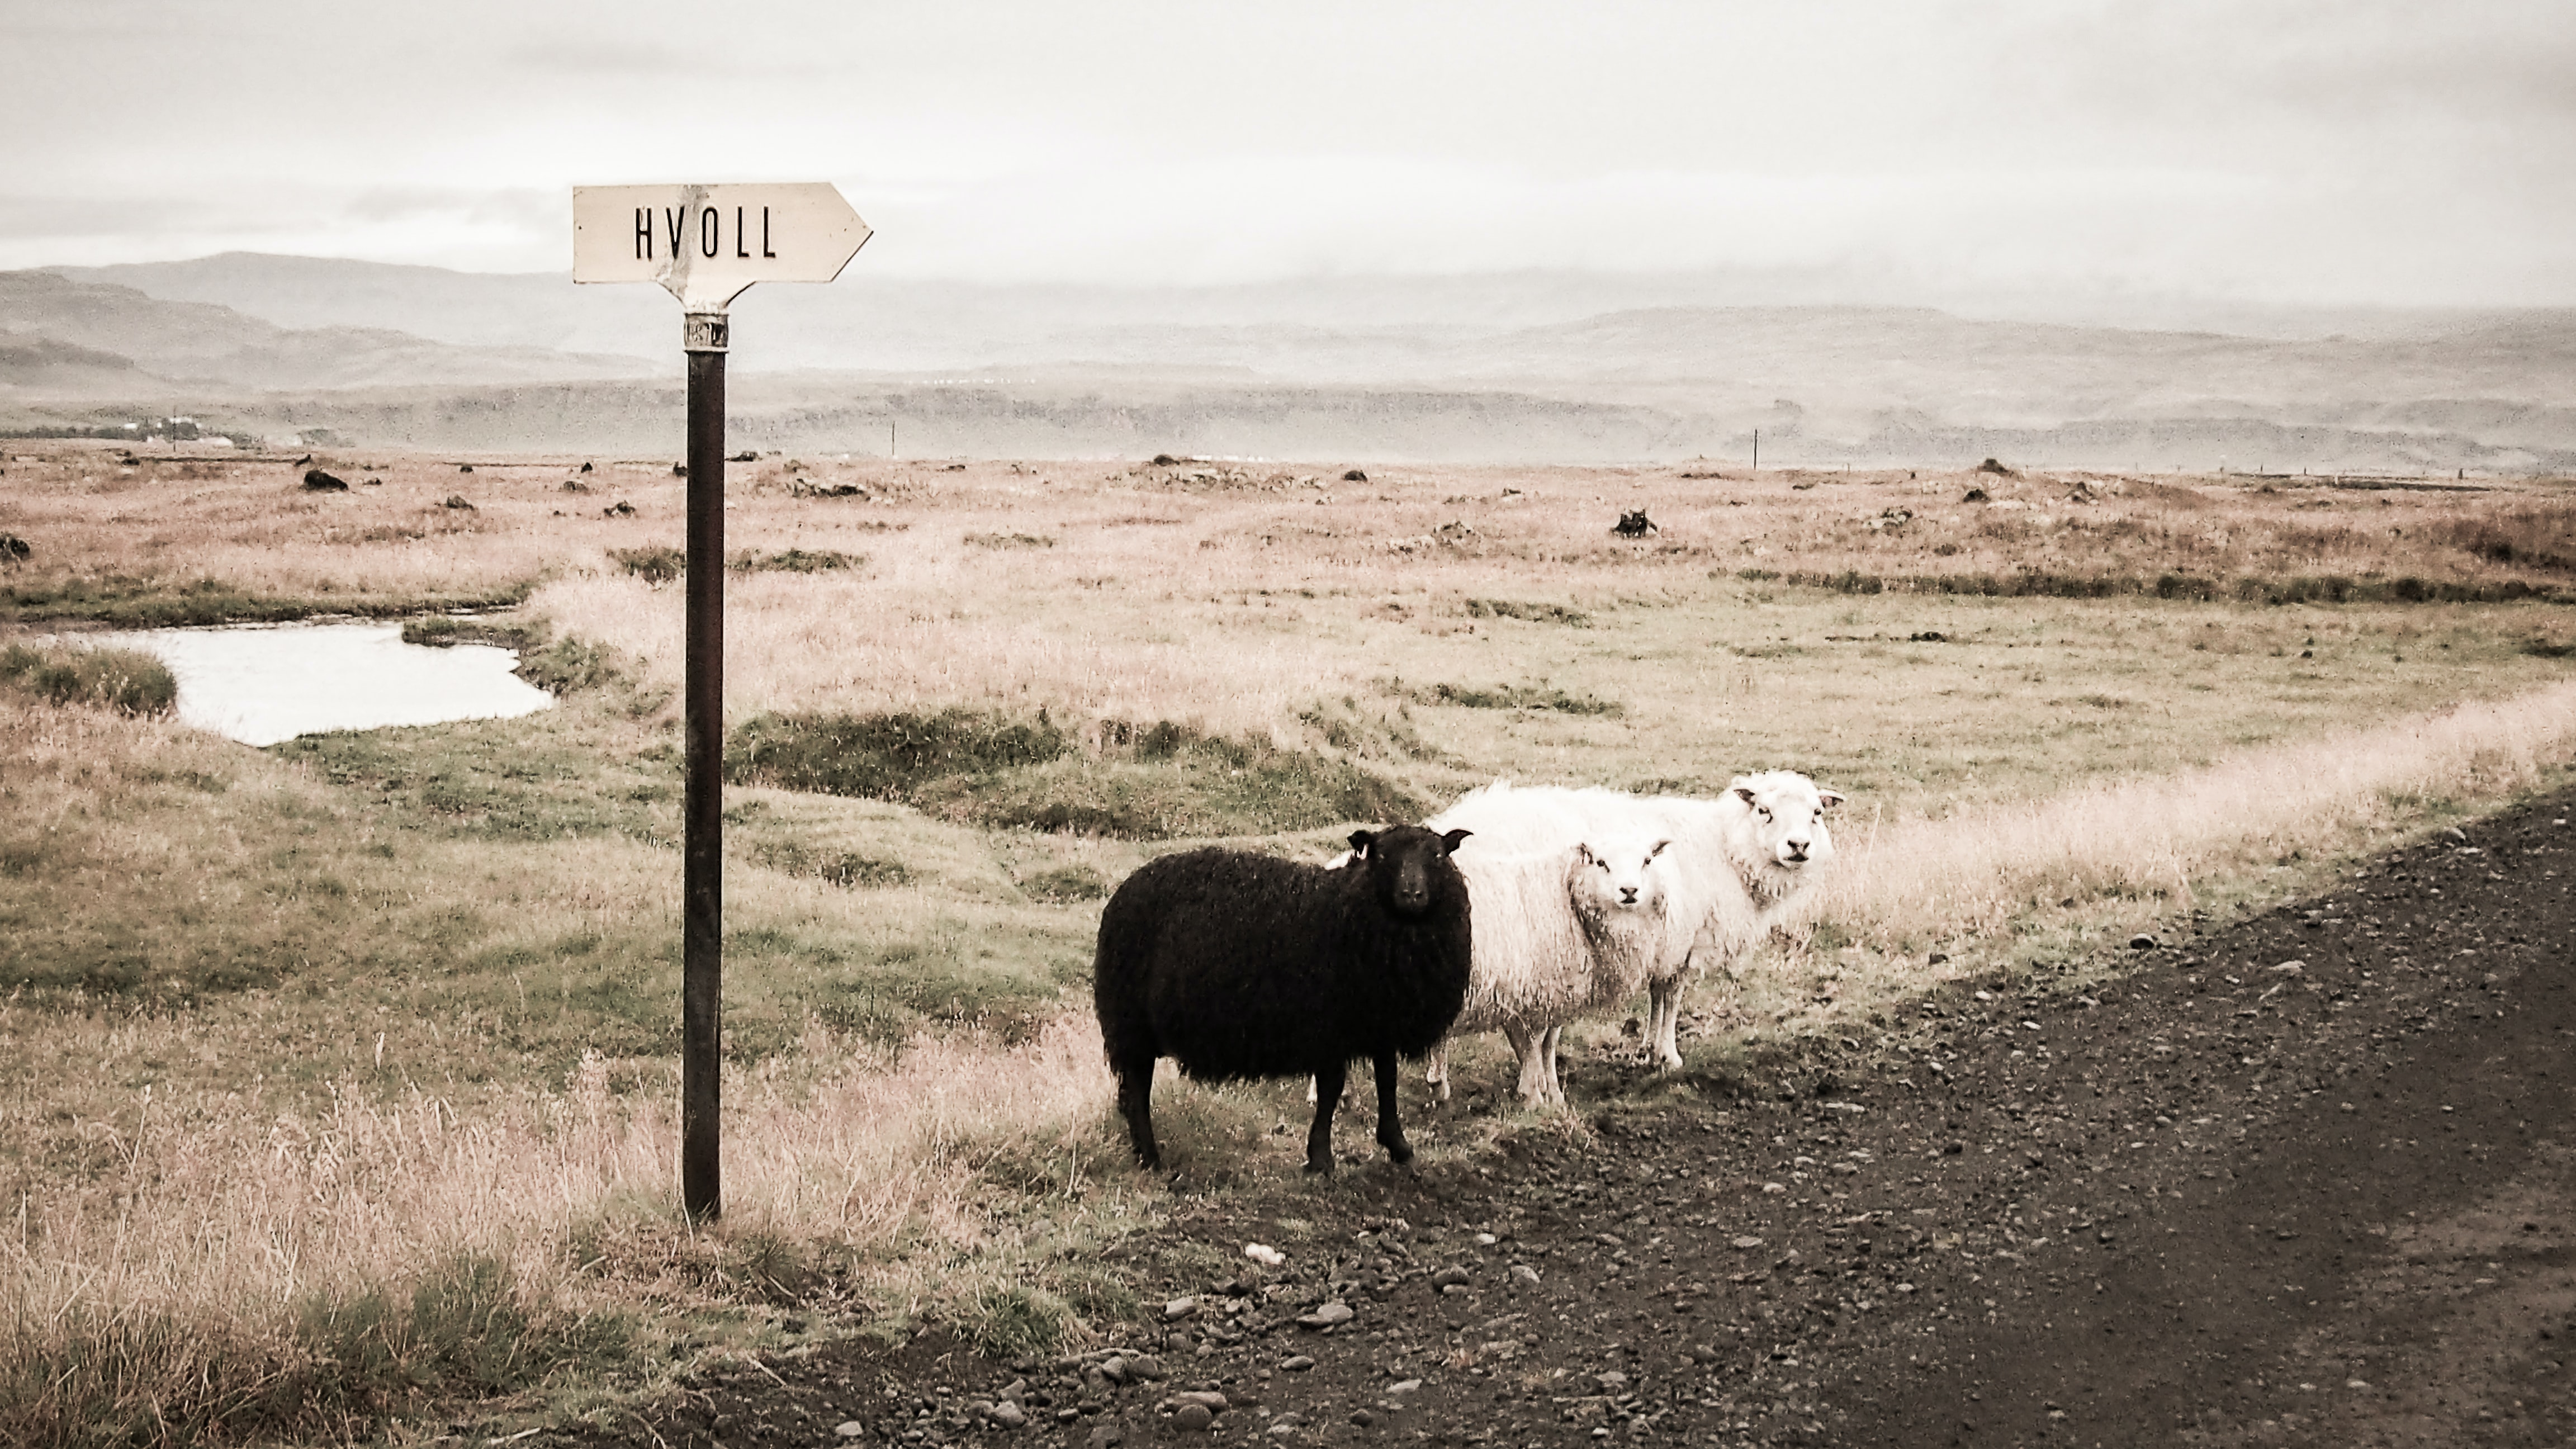 Sheep stand next to a rural road in the country